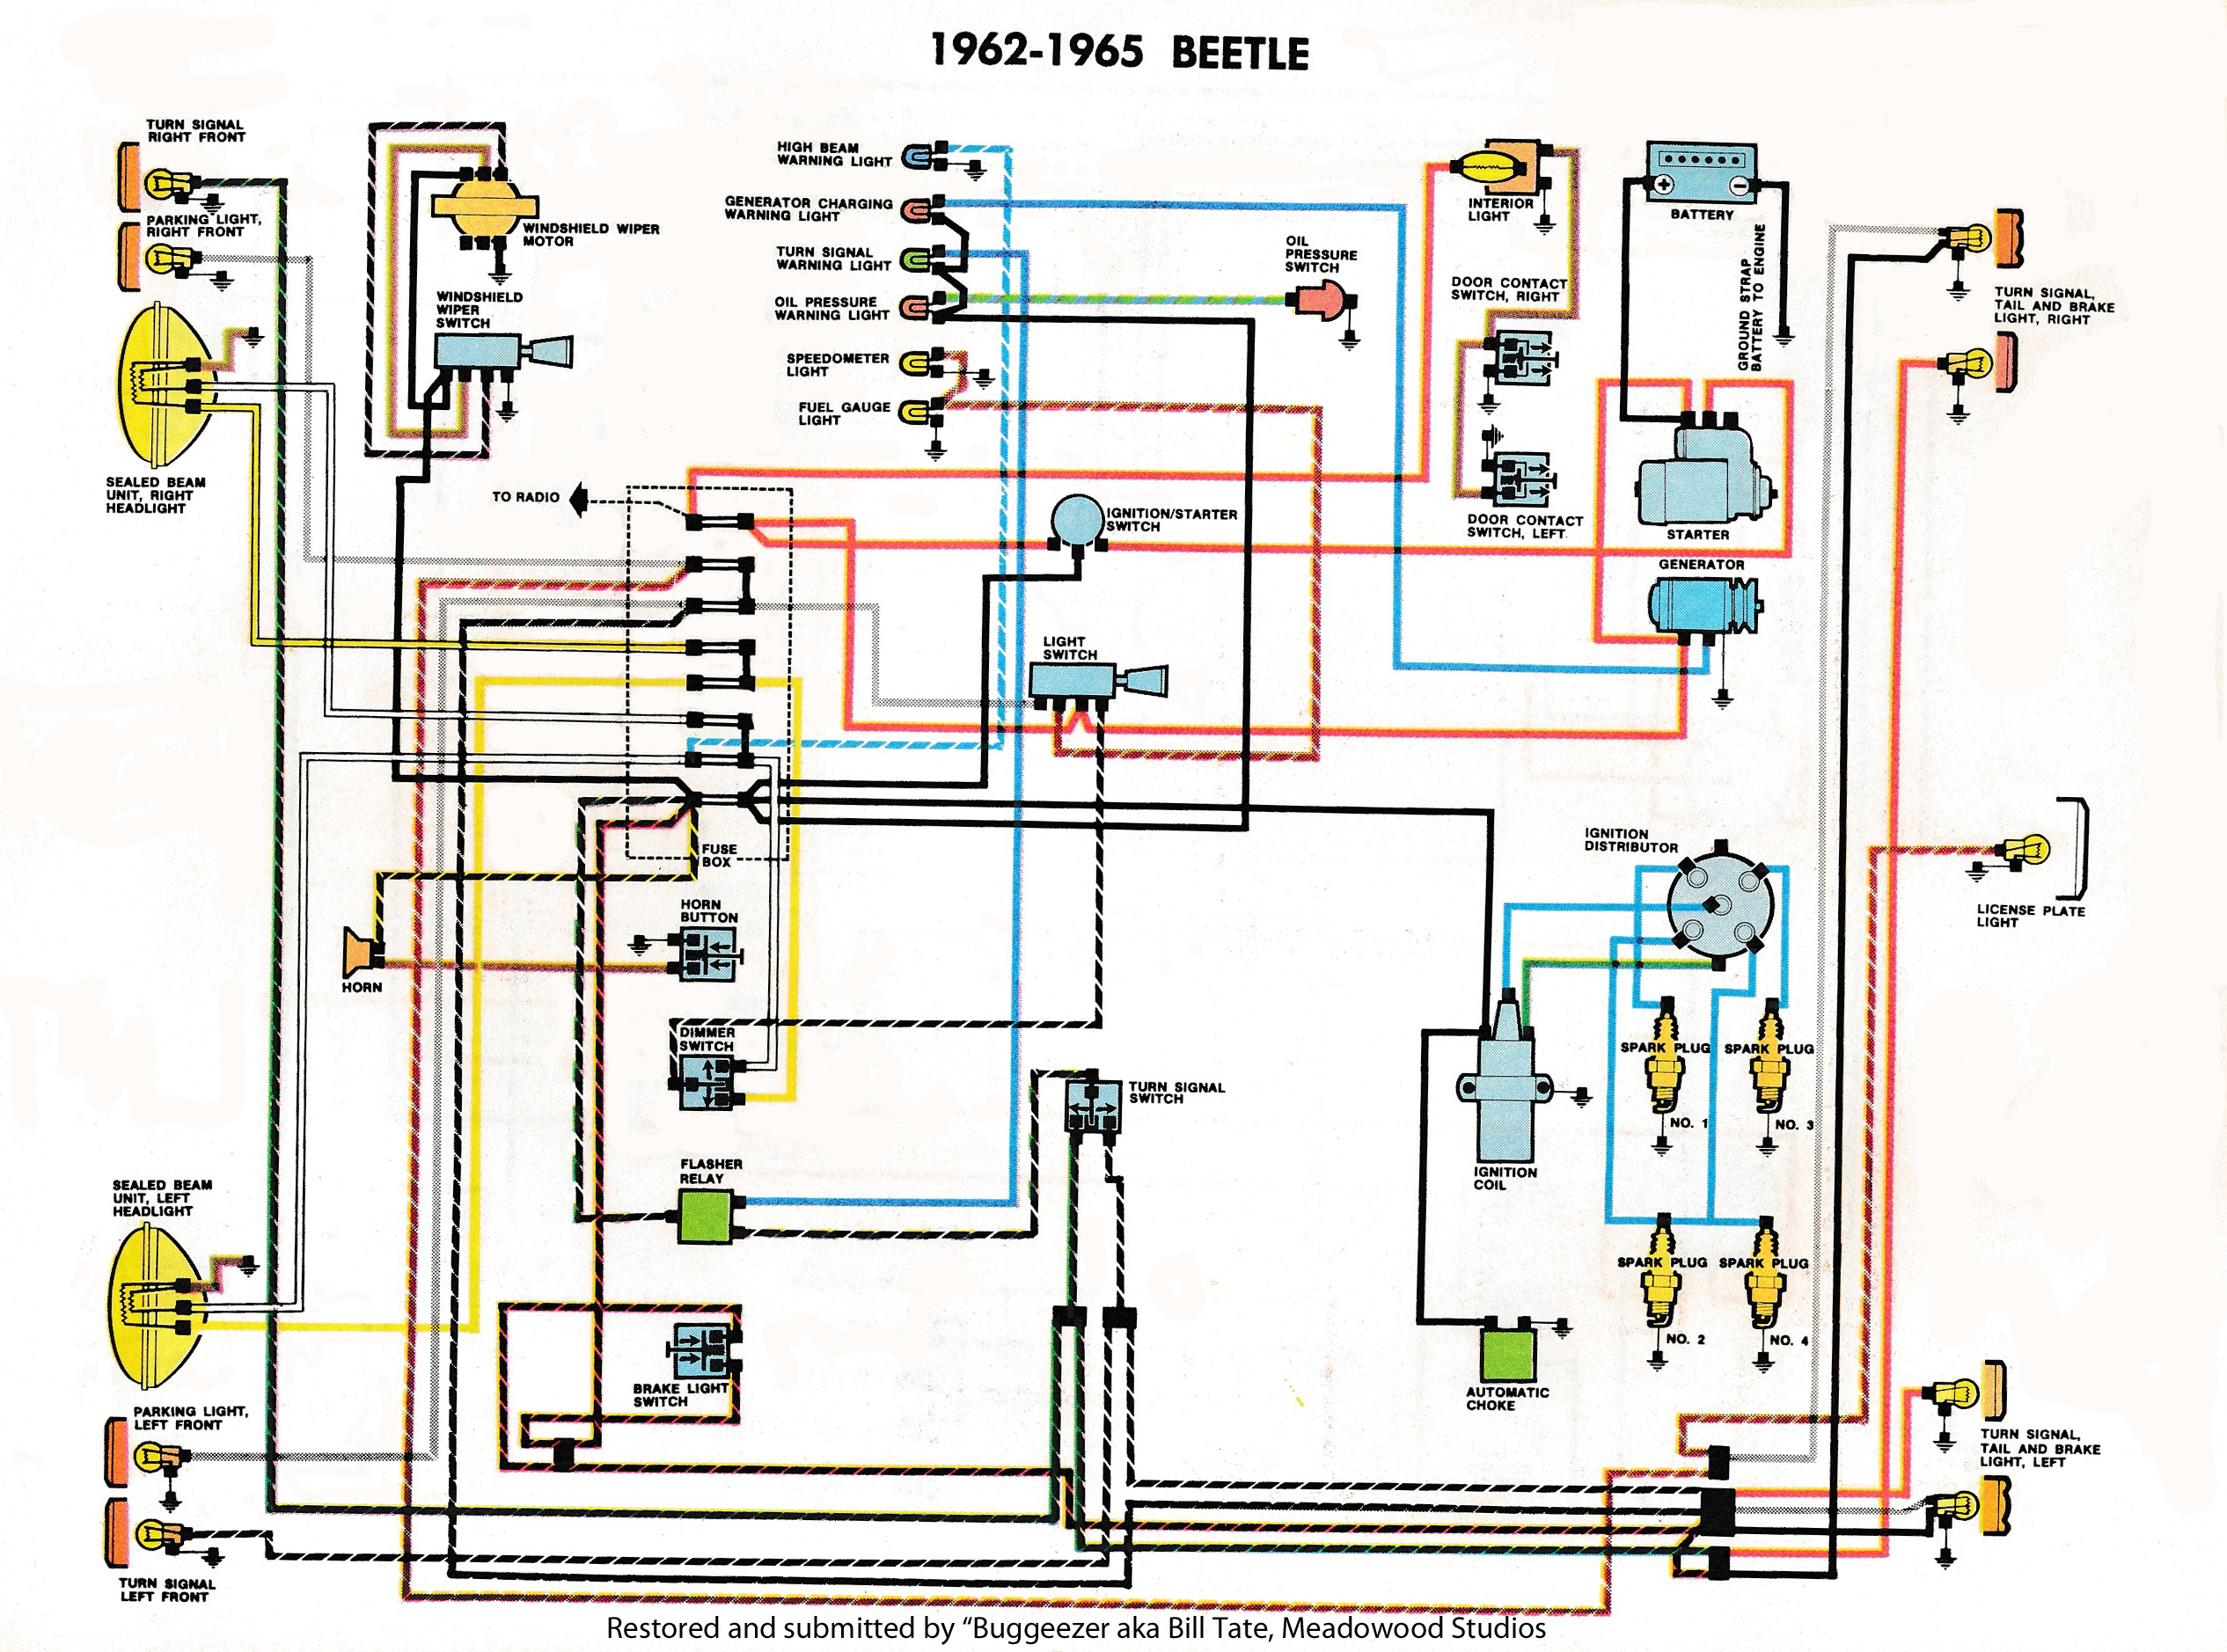 1970 Vw Beetle Fuse Box Wiring Diagram List Of Schematic Circuit 70 Camaro Tcs Switch Harness Thesamba Com Type 1 Diagrams Rh